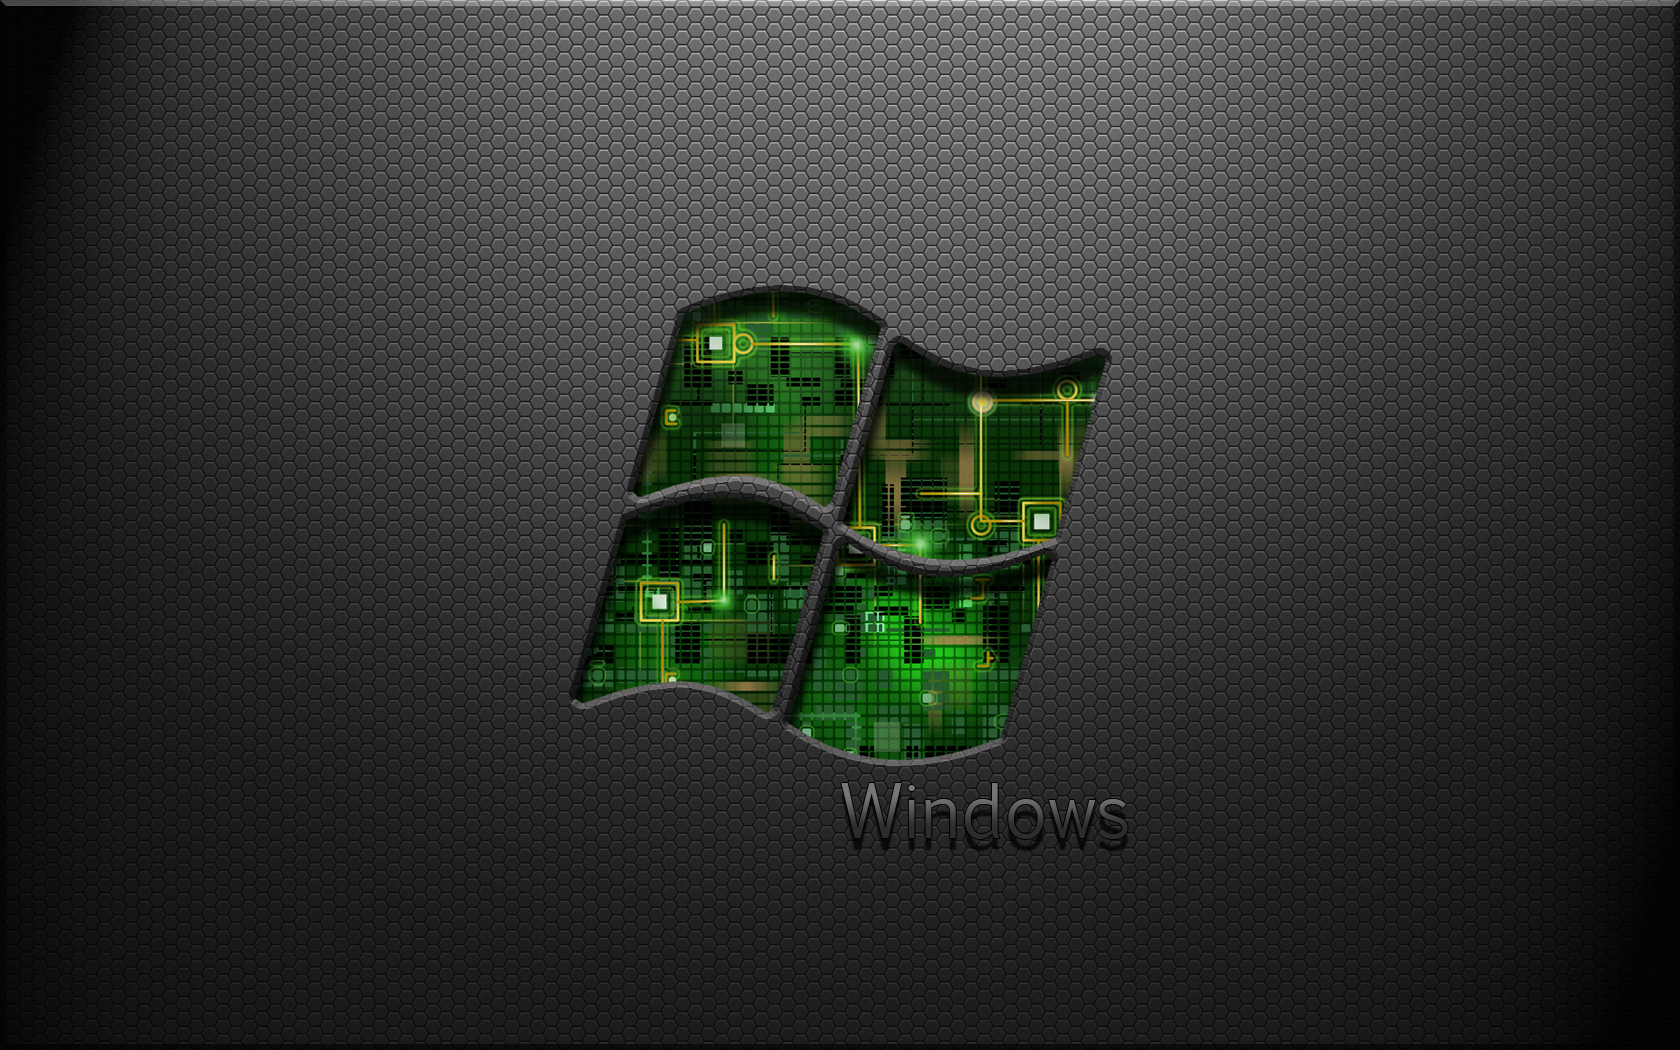 Windows 7 | Awesome Wallpapers